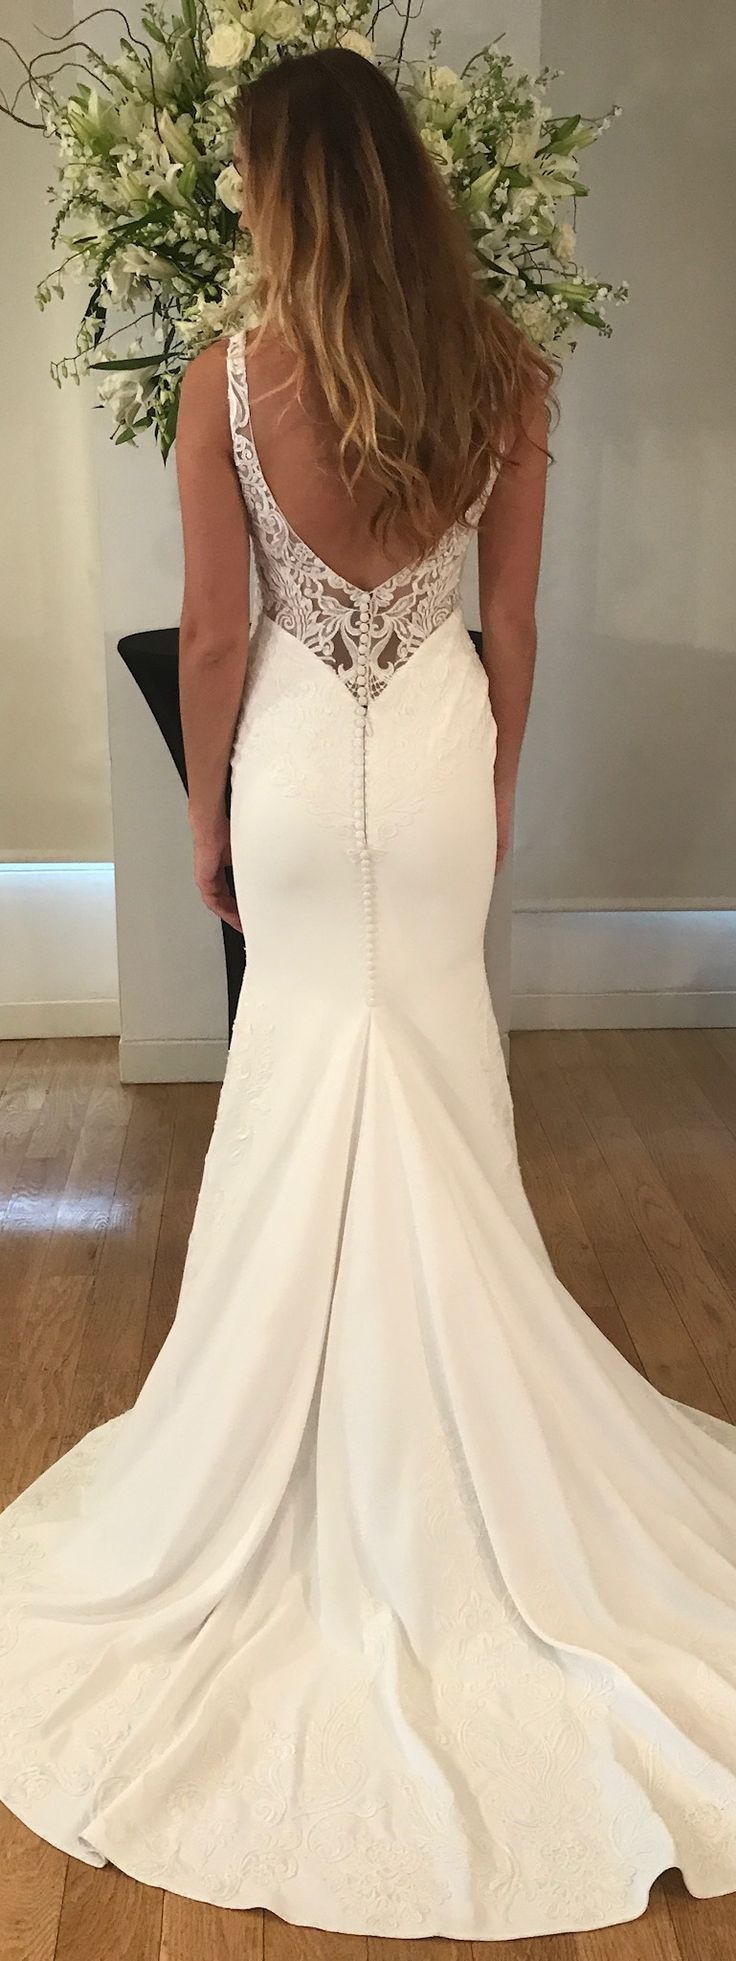 Roxy wedding dress by Kelly Faetanini // Crepe v-neck slim gown with plunging back and embroidered appliques